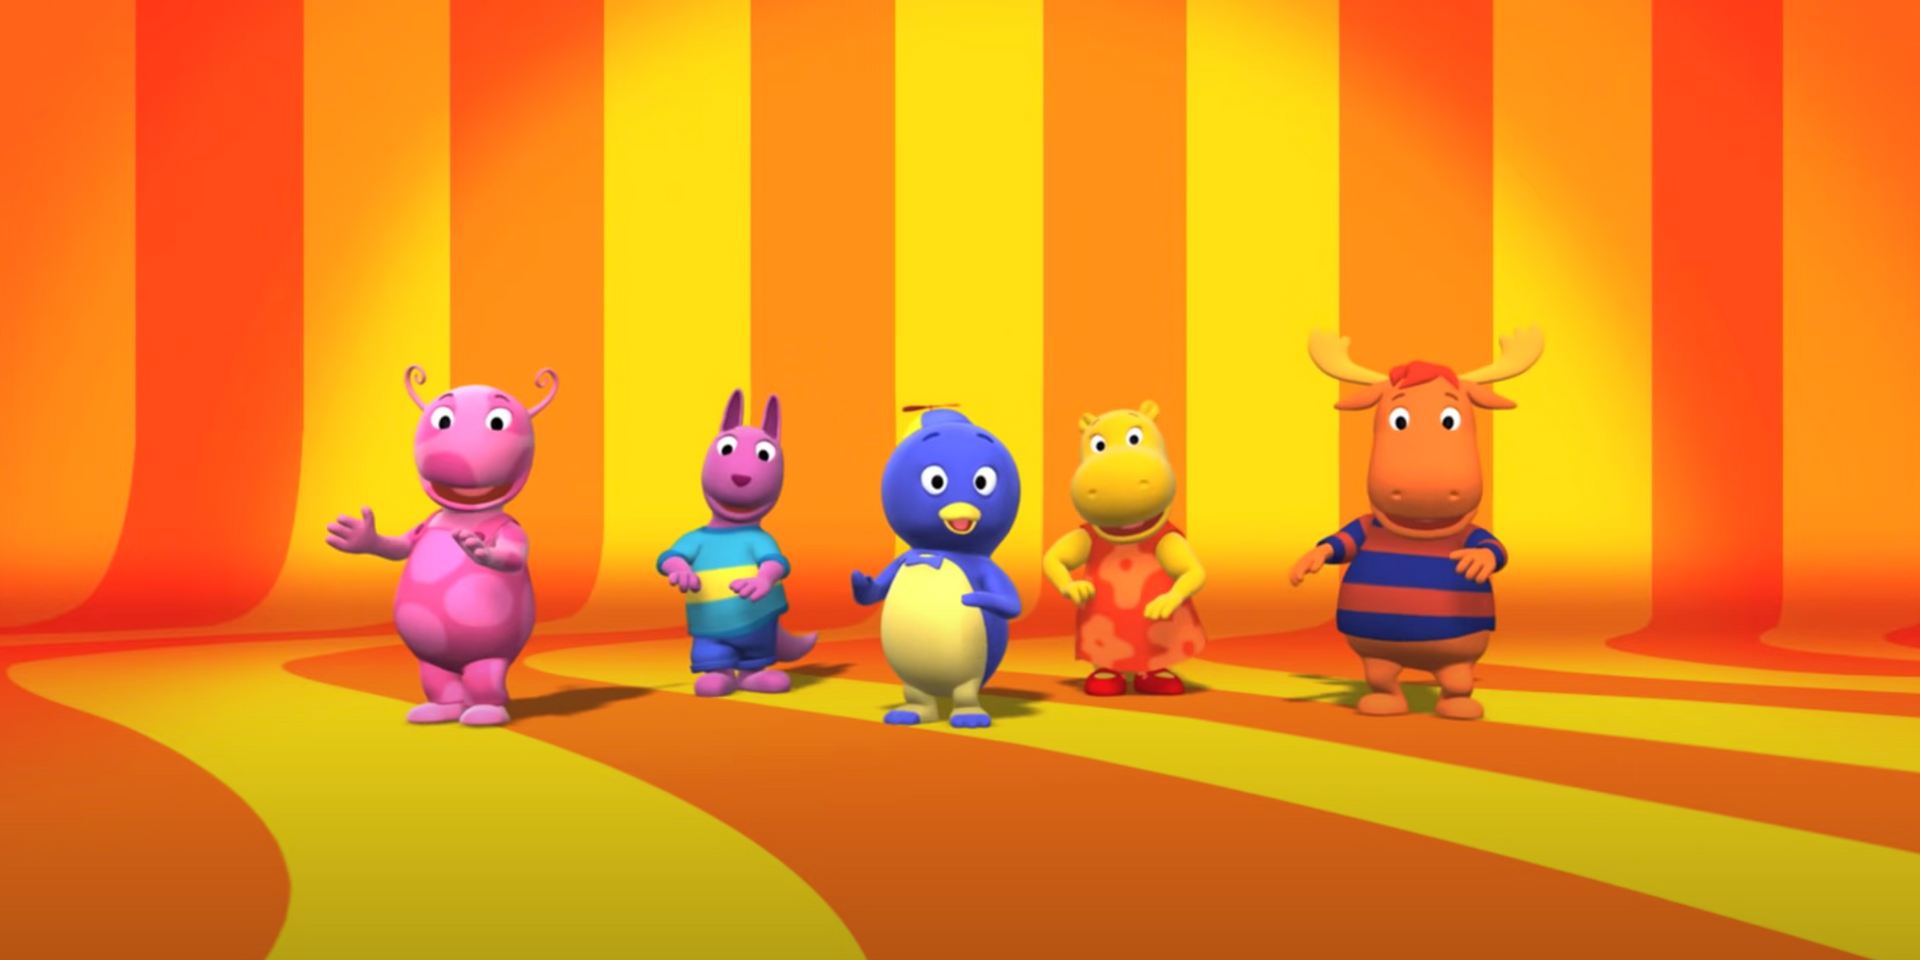 The Backyardigans' lyricist McPaul Smith on the heart behind his viral TikTok hits and his illustrious career in kids' media